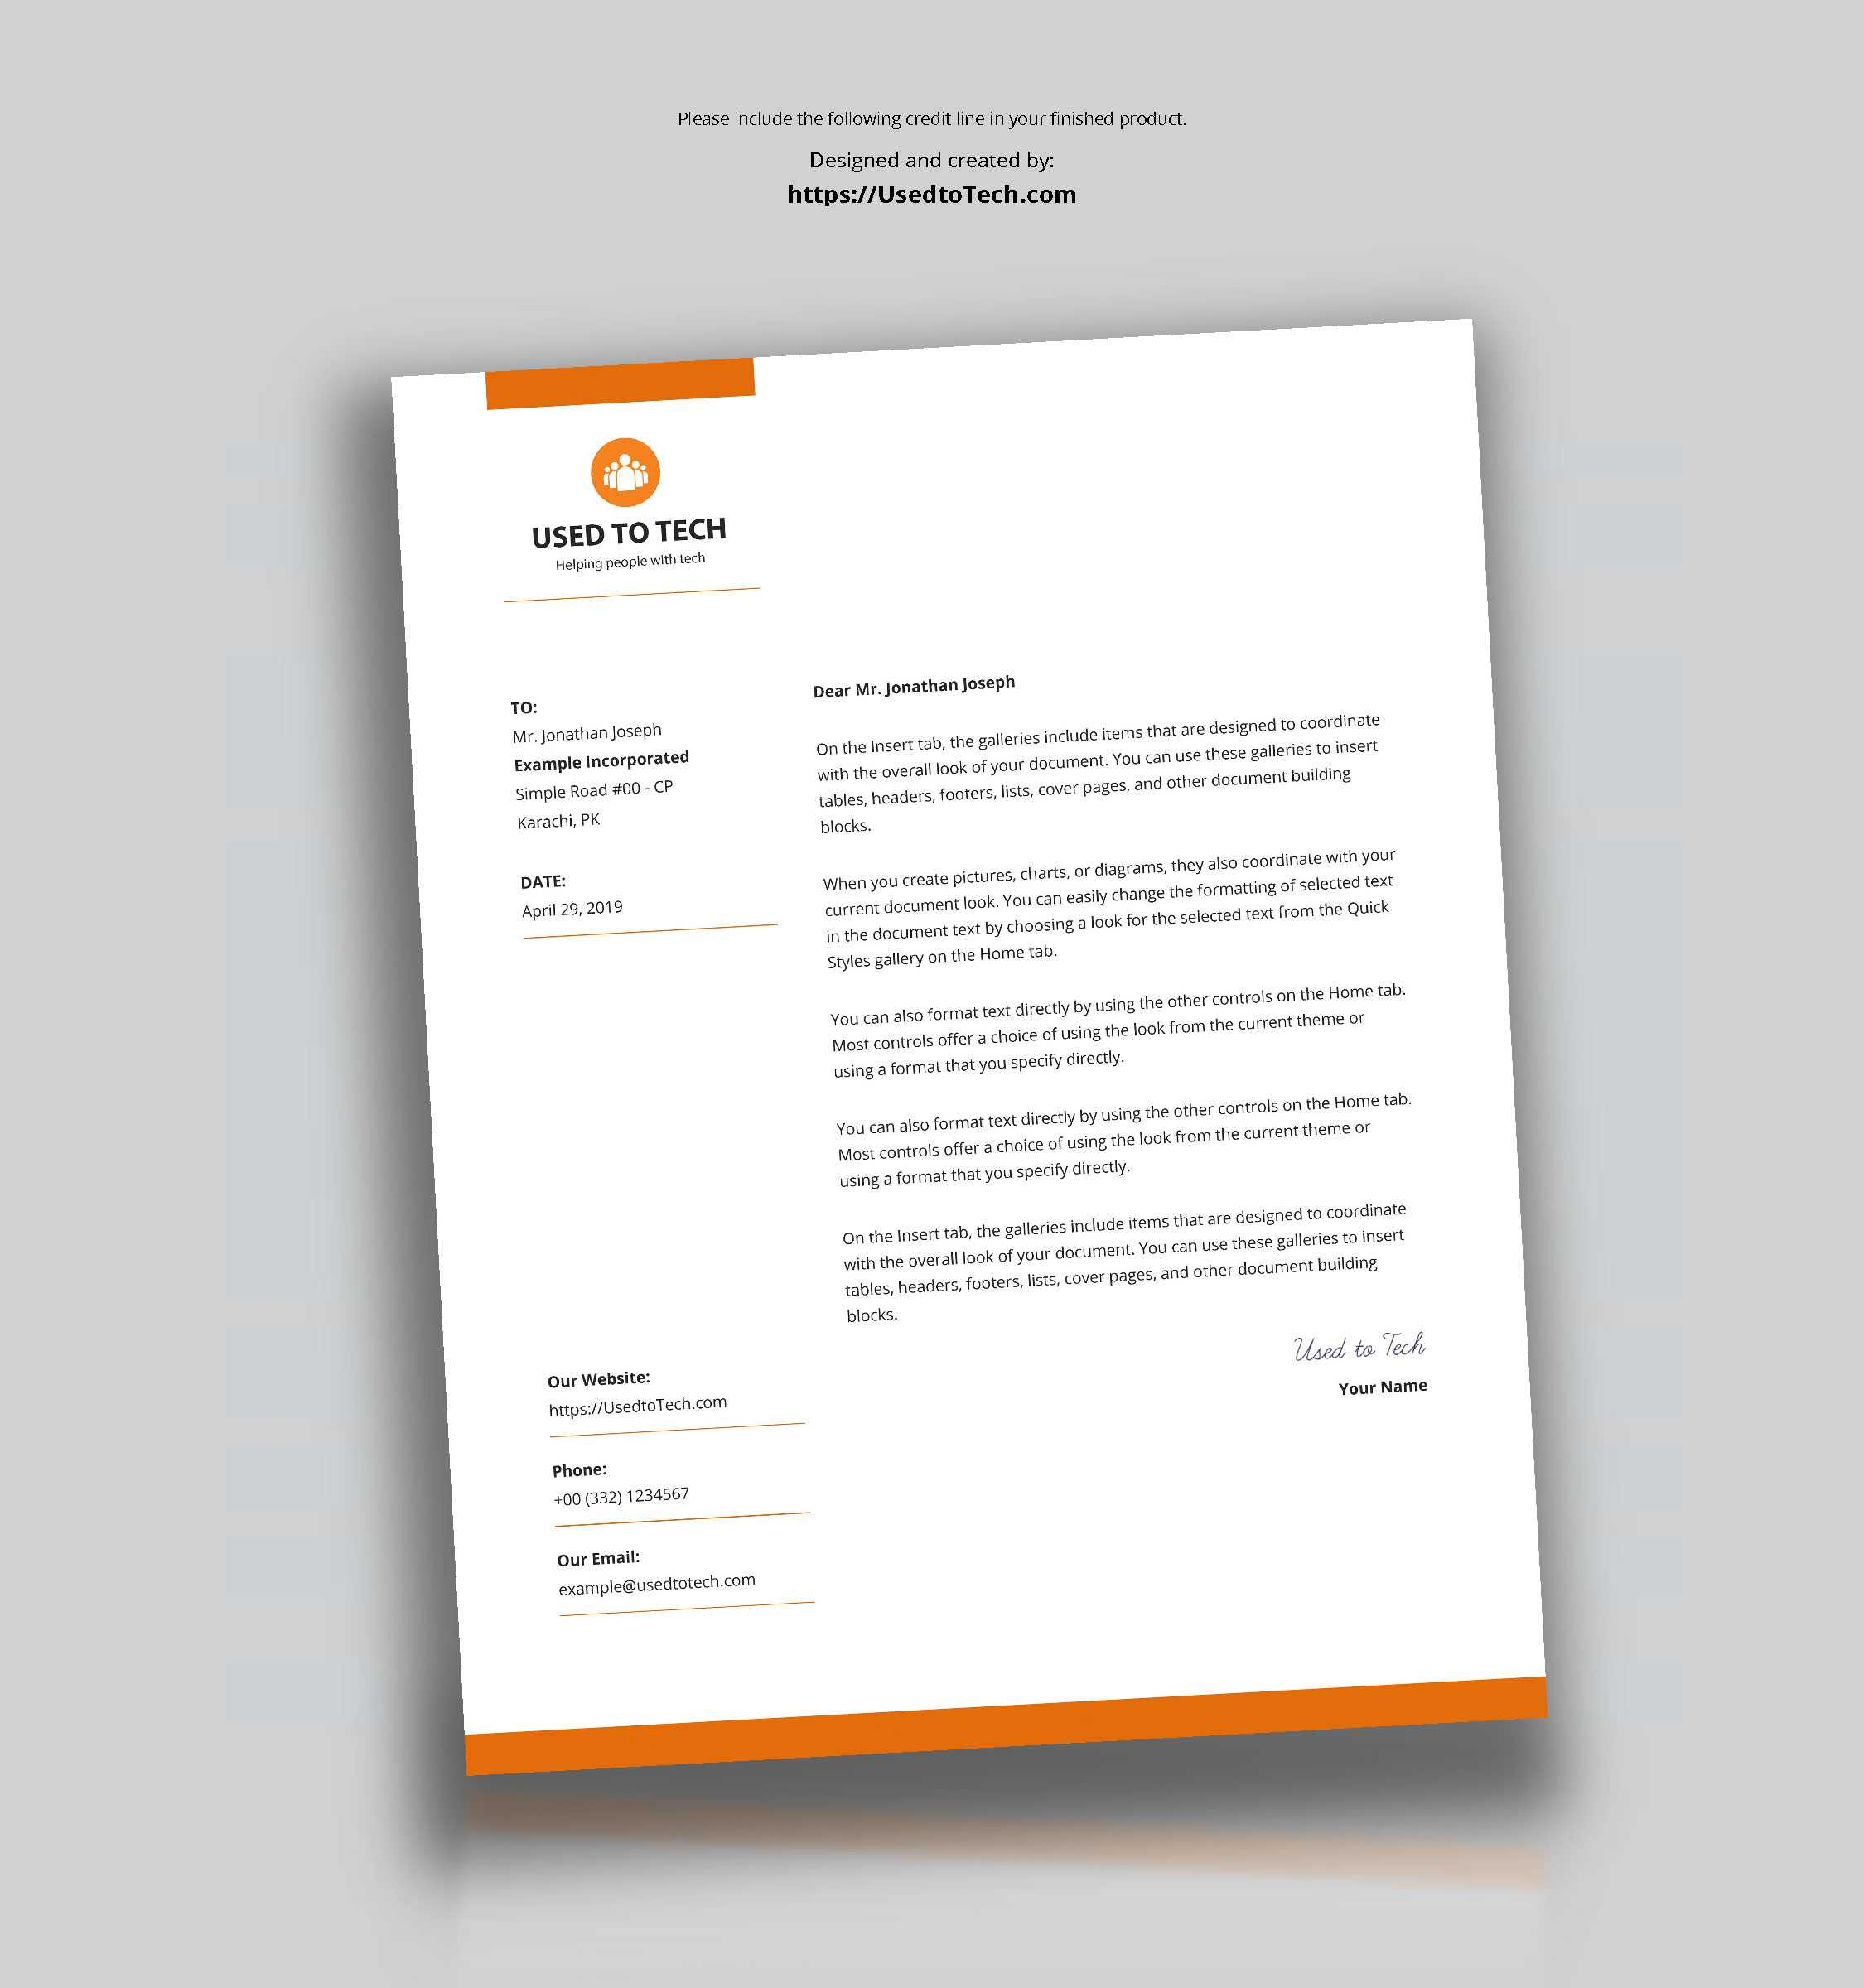 Modern Letterhead Template In Microsoft Word Free - Used To Tech Within Free Letterhead Templates For Microsoft Word